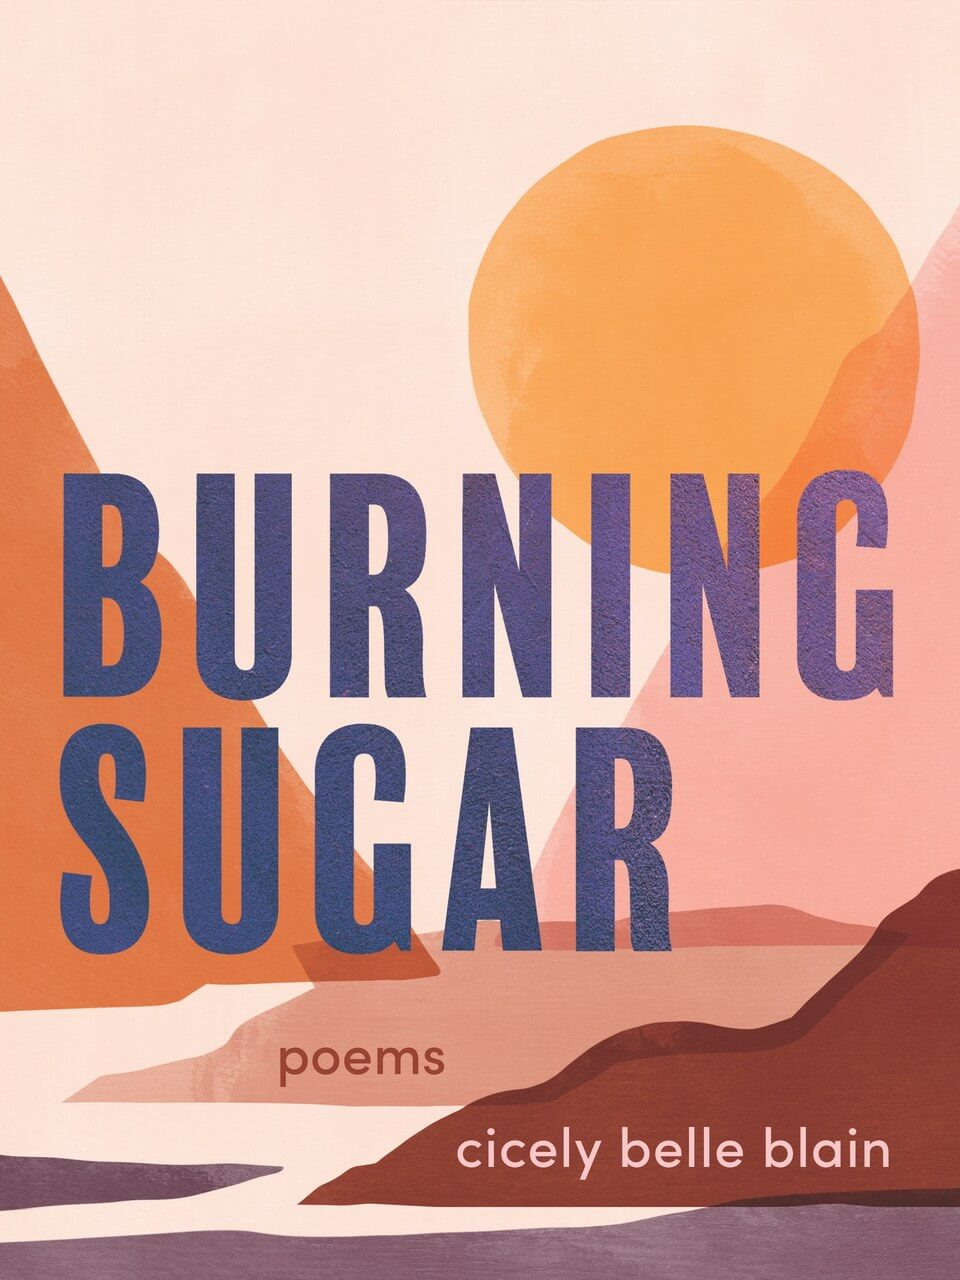 'Burning Sugar' cover art